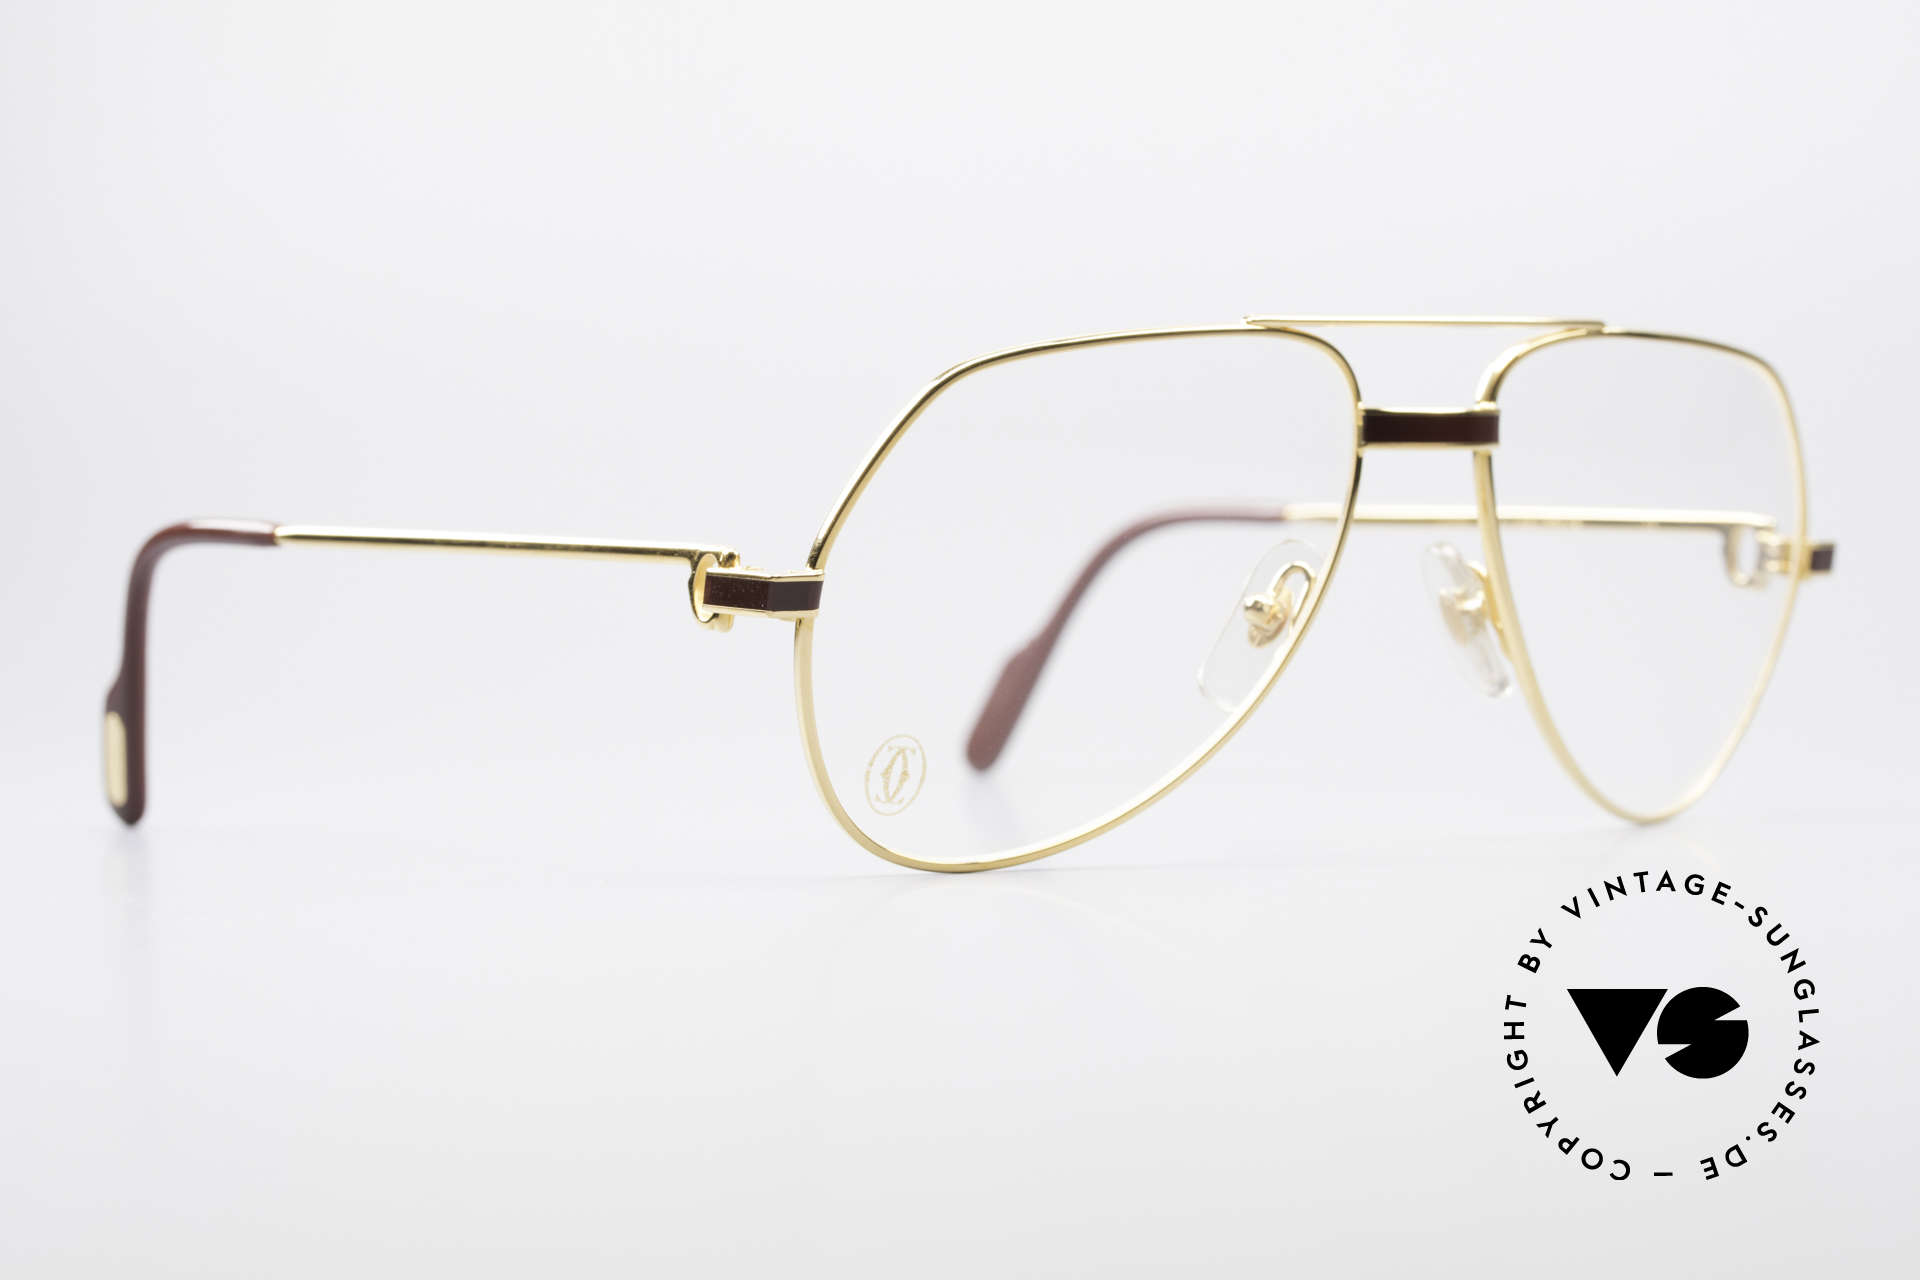 a9c638563e76 Glasses Cartier Vendome Laque - S Luxury Eyeglass-Frame